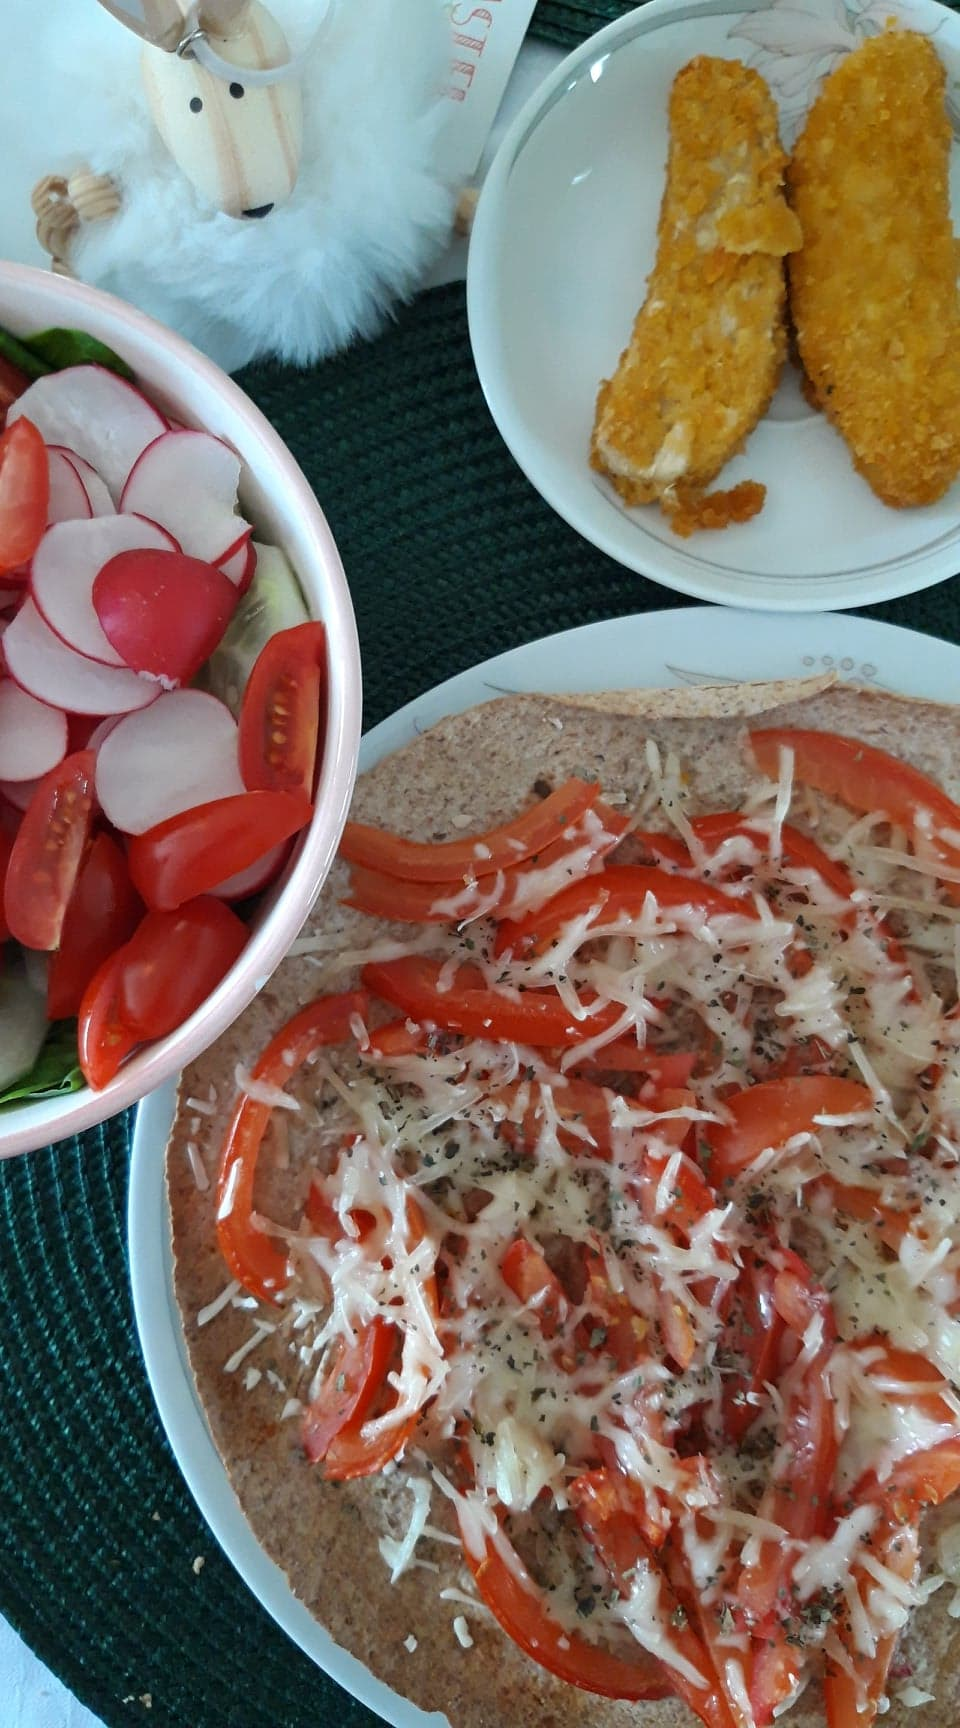 Salad, faux chicken and pizza made of wraps, tomatoes and faux mozzarella